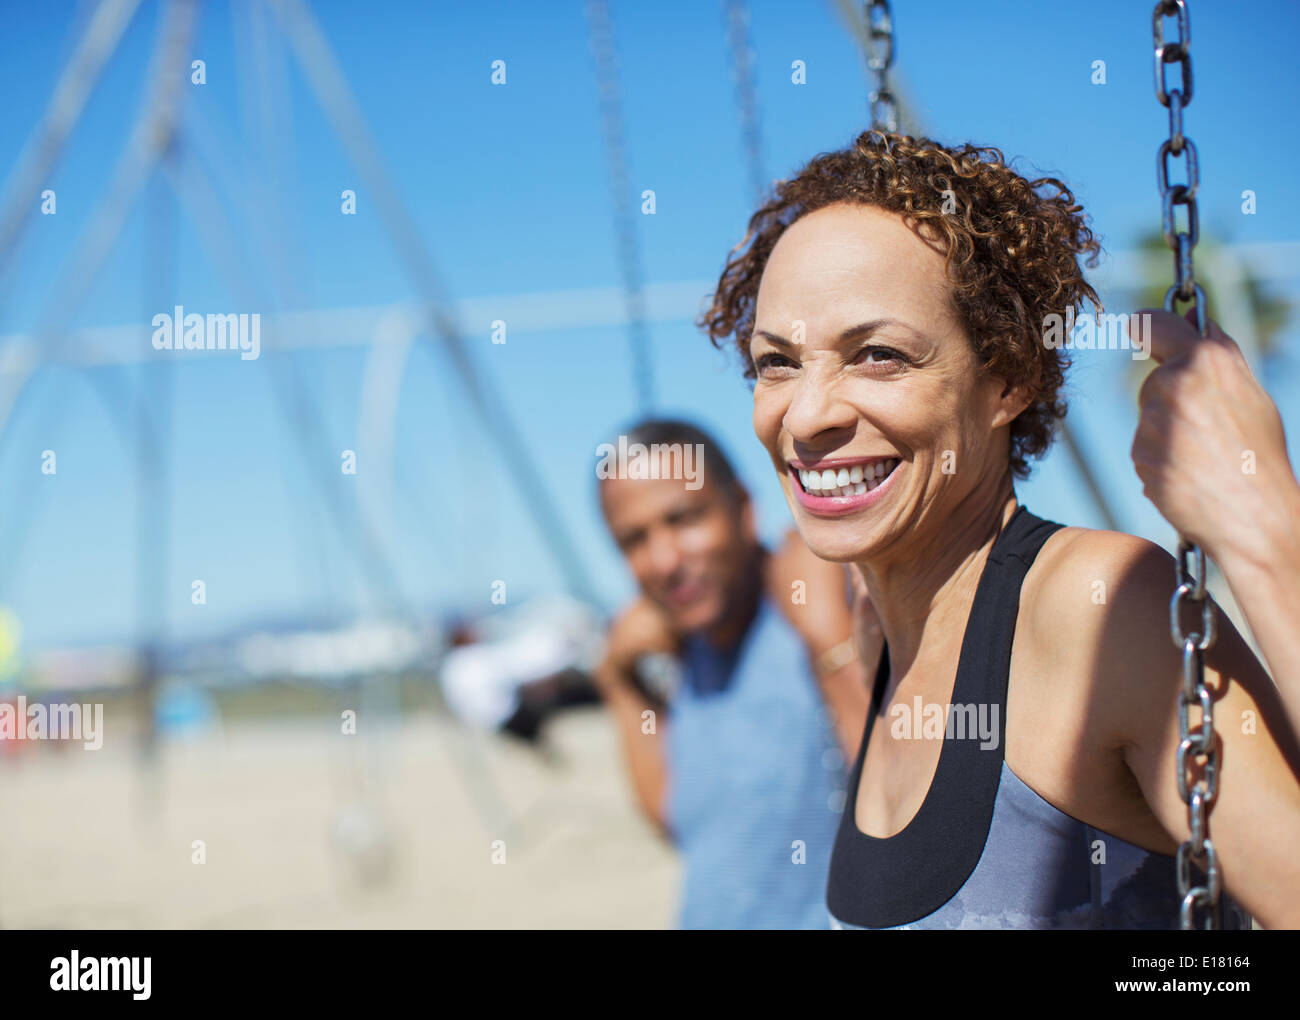 Happy couple on swings at playground - Stock Image